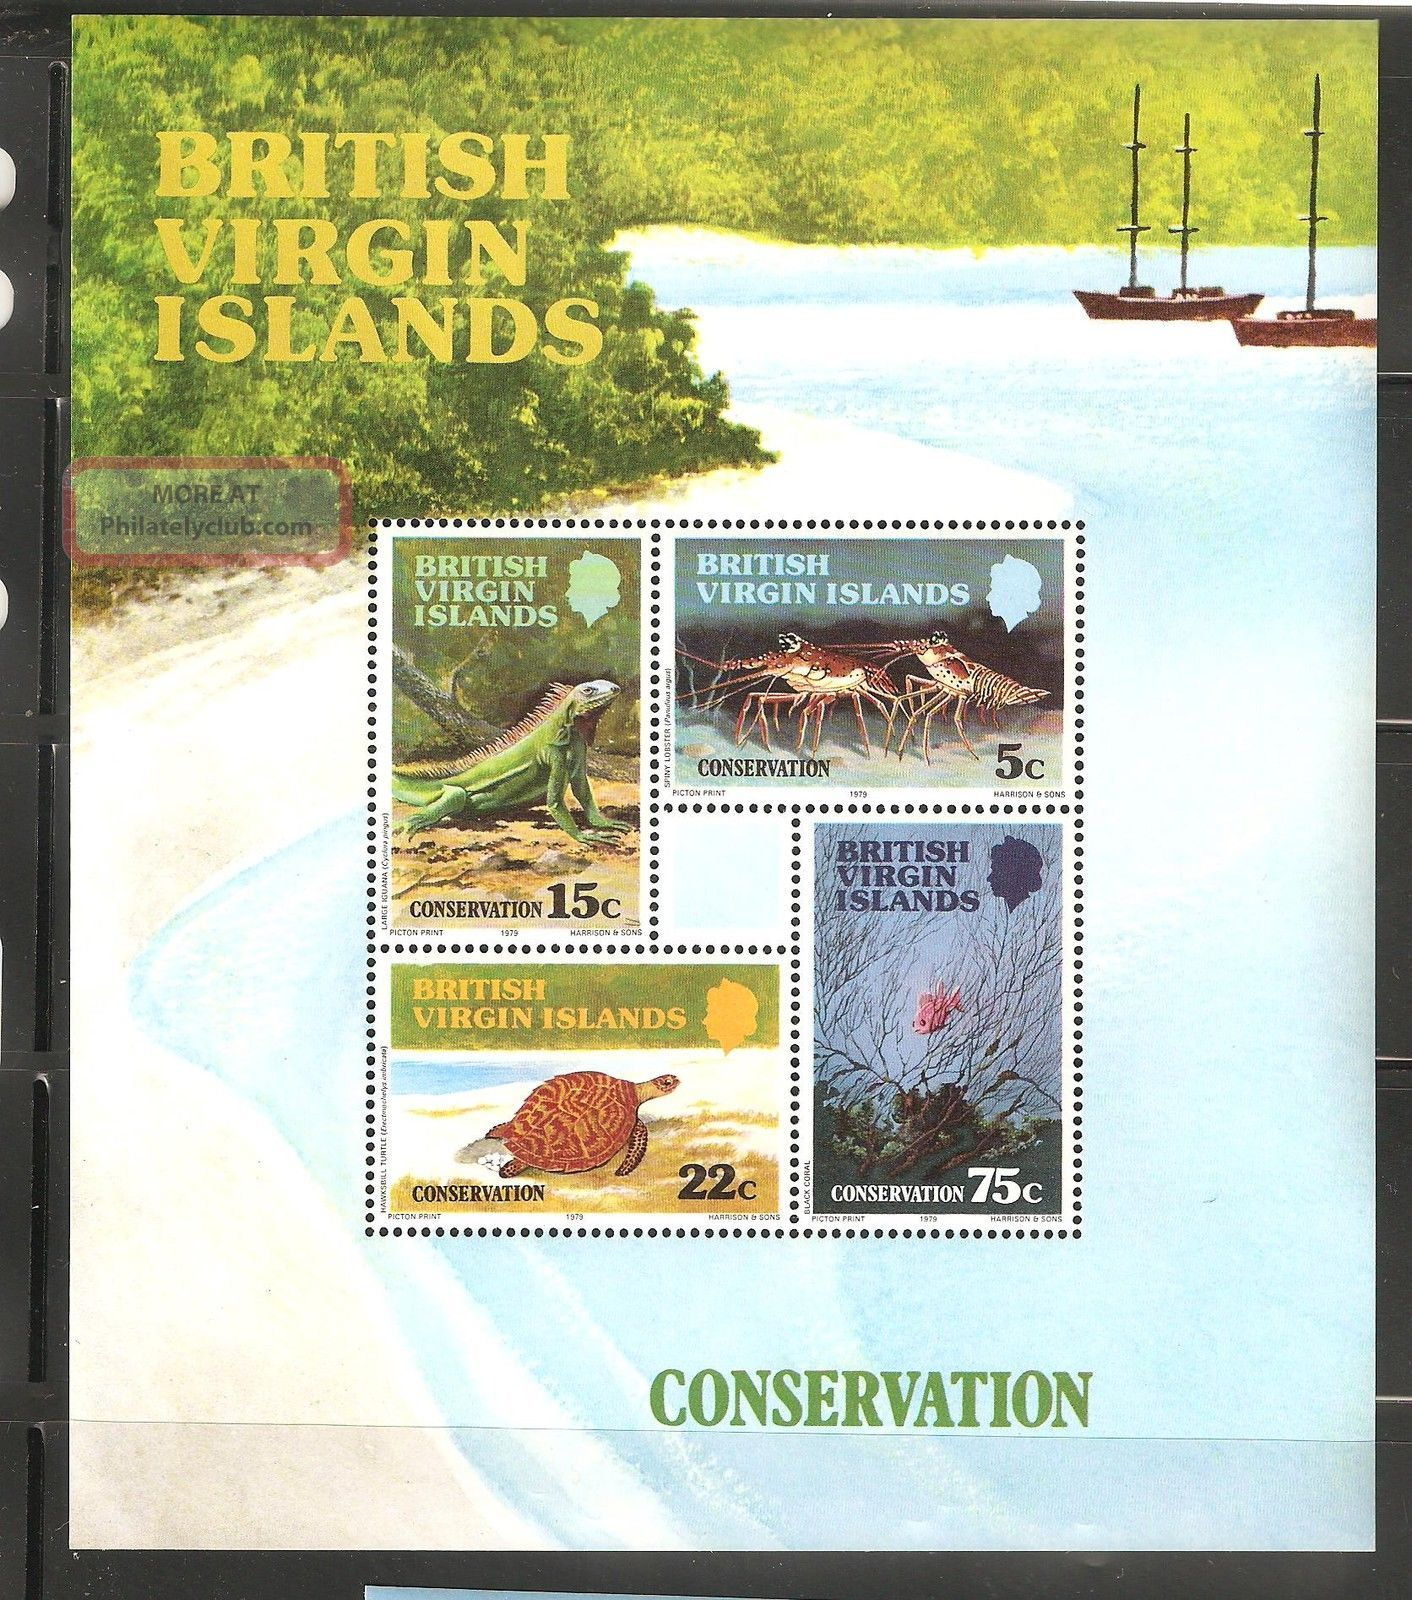 British Virgin Islands 1979 Sc 346 - 349a Conservation Souvenir Sht Vf British Colonies & Territories photo